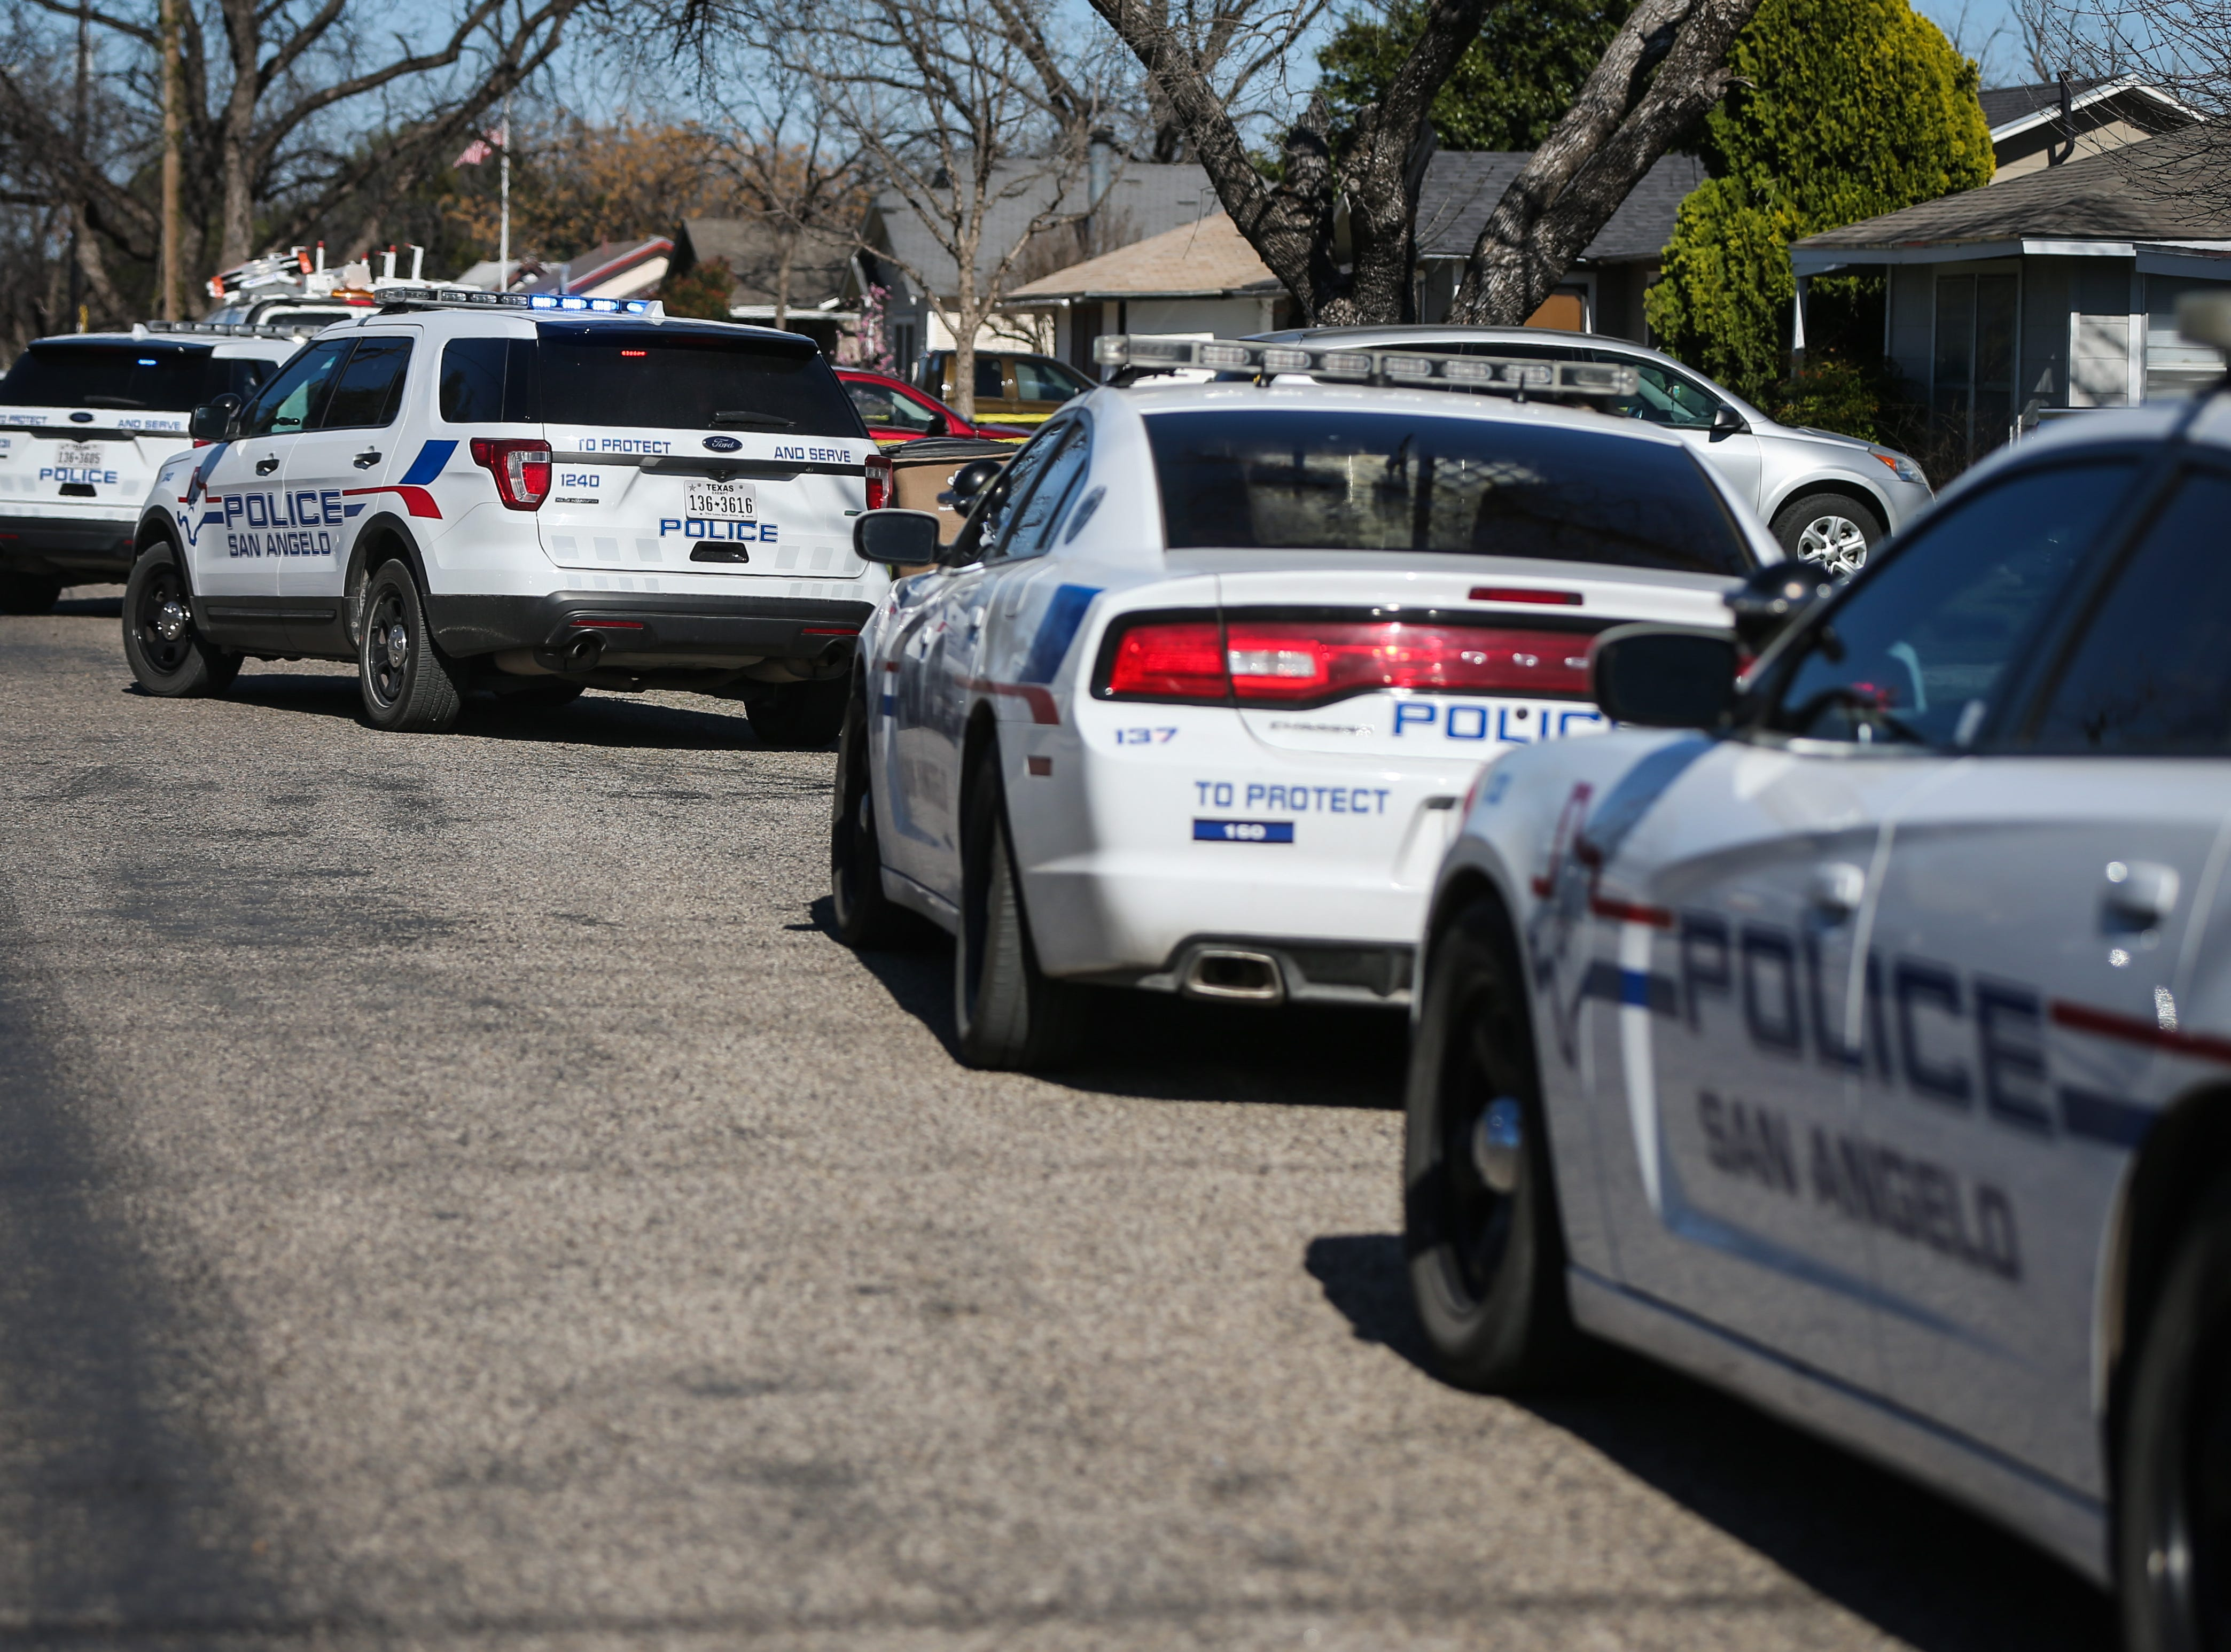 Police investigate a fatal shooting Tuesday, March 19, 2019, at 2000 block of Bailey in San Angelo.